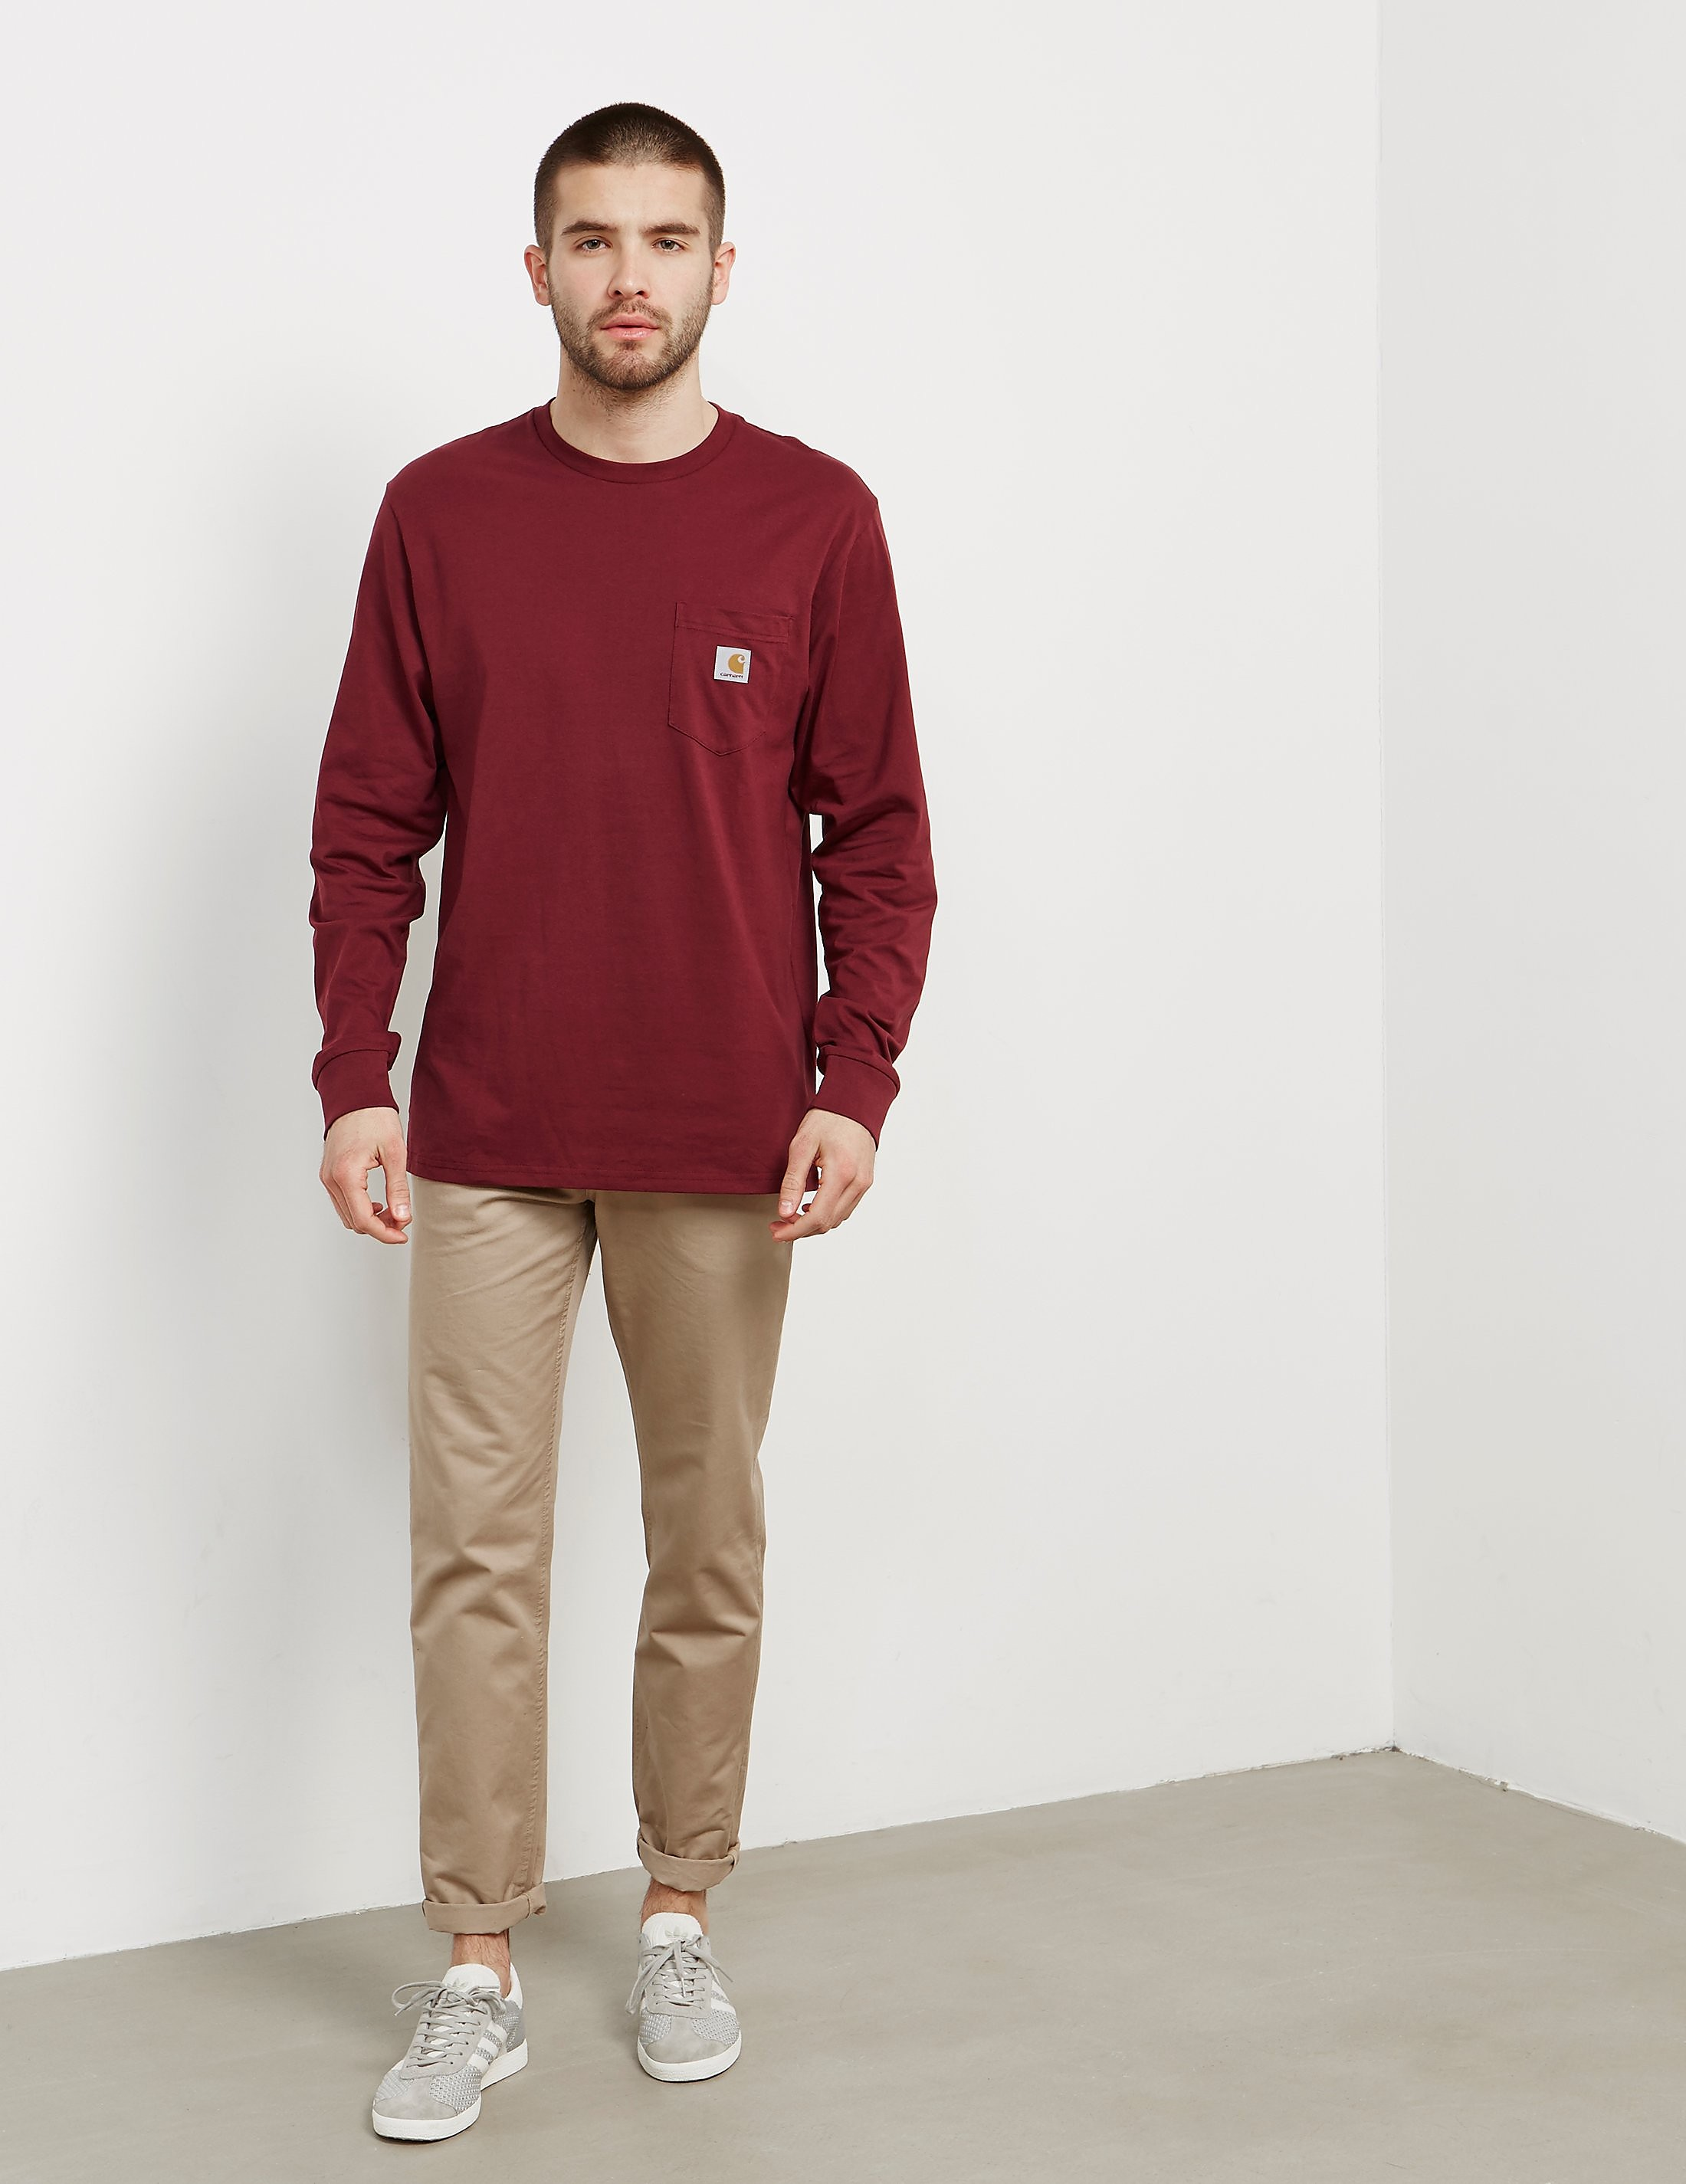 Carhartt WIP Pocket Long Sleeved T-Shirt